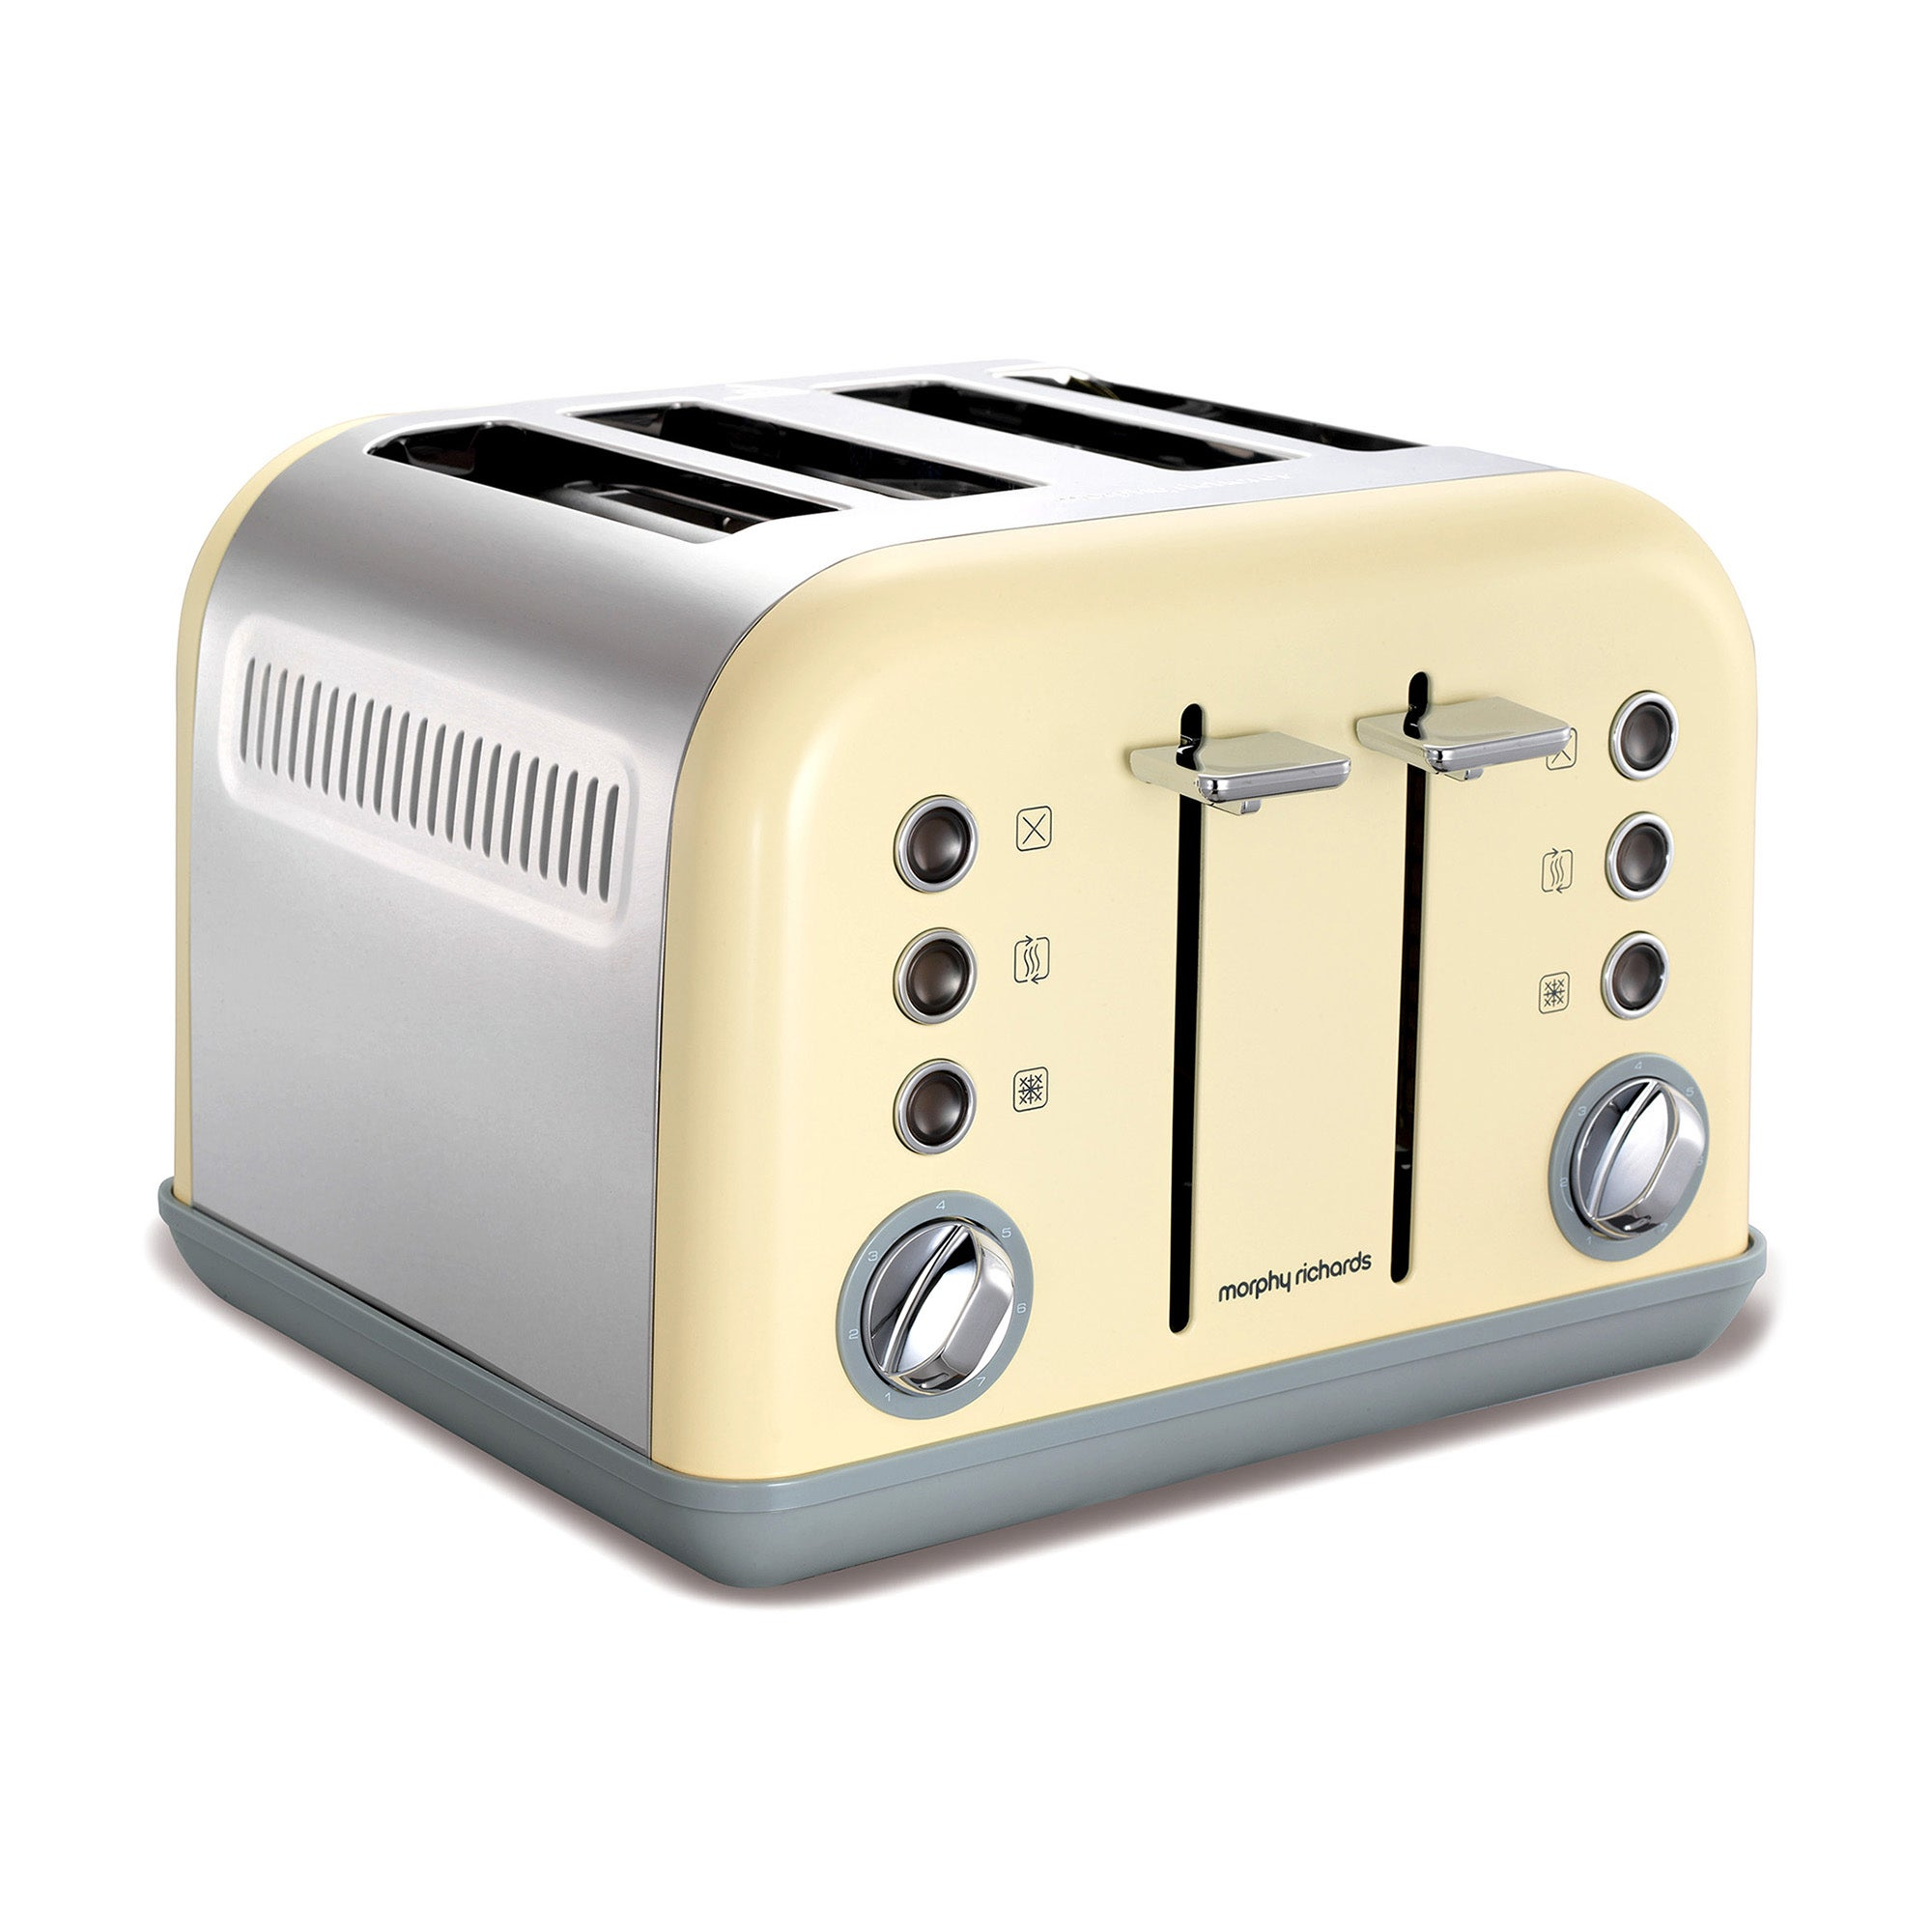 Morphy Richards Accents Cream 4 Slice Toaster